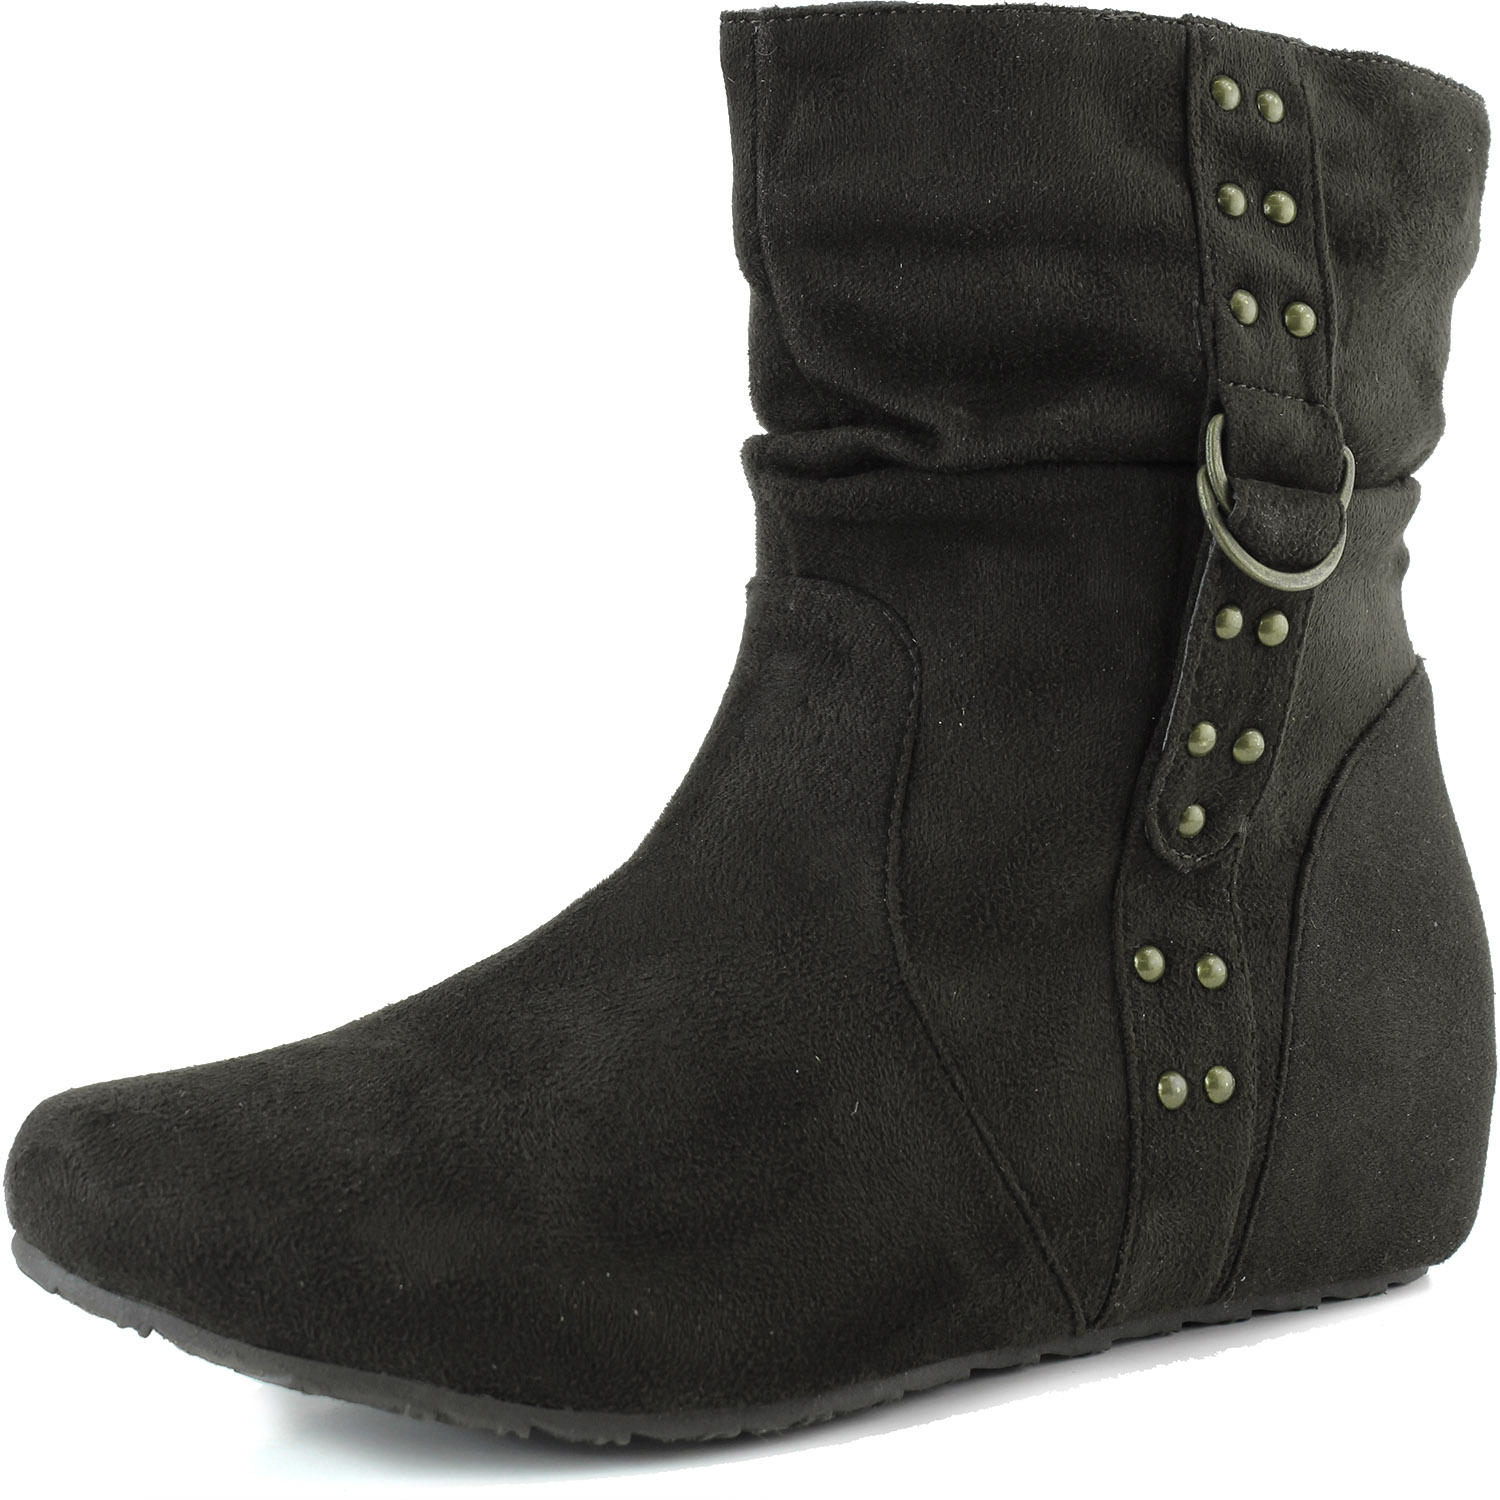 Top Moda Women's Top Moda Anne-2 Flat Suede Ankle Boots at Sears.com